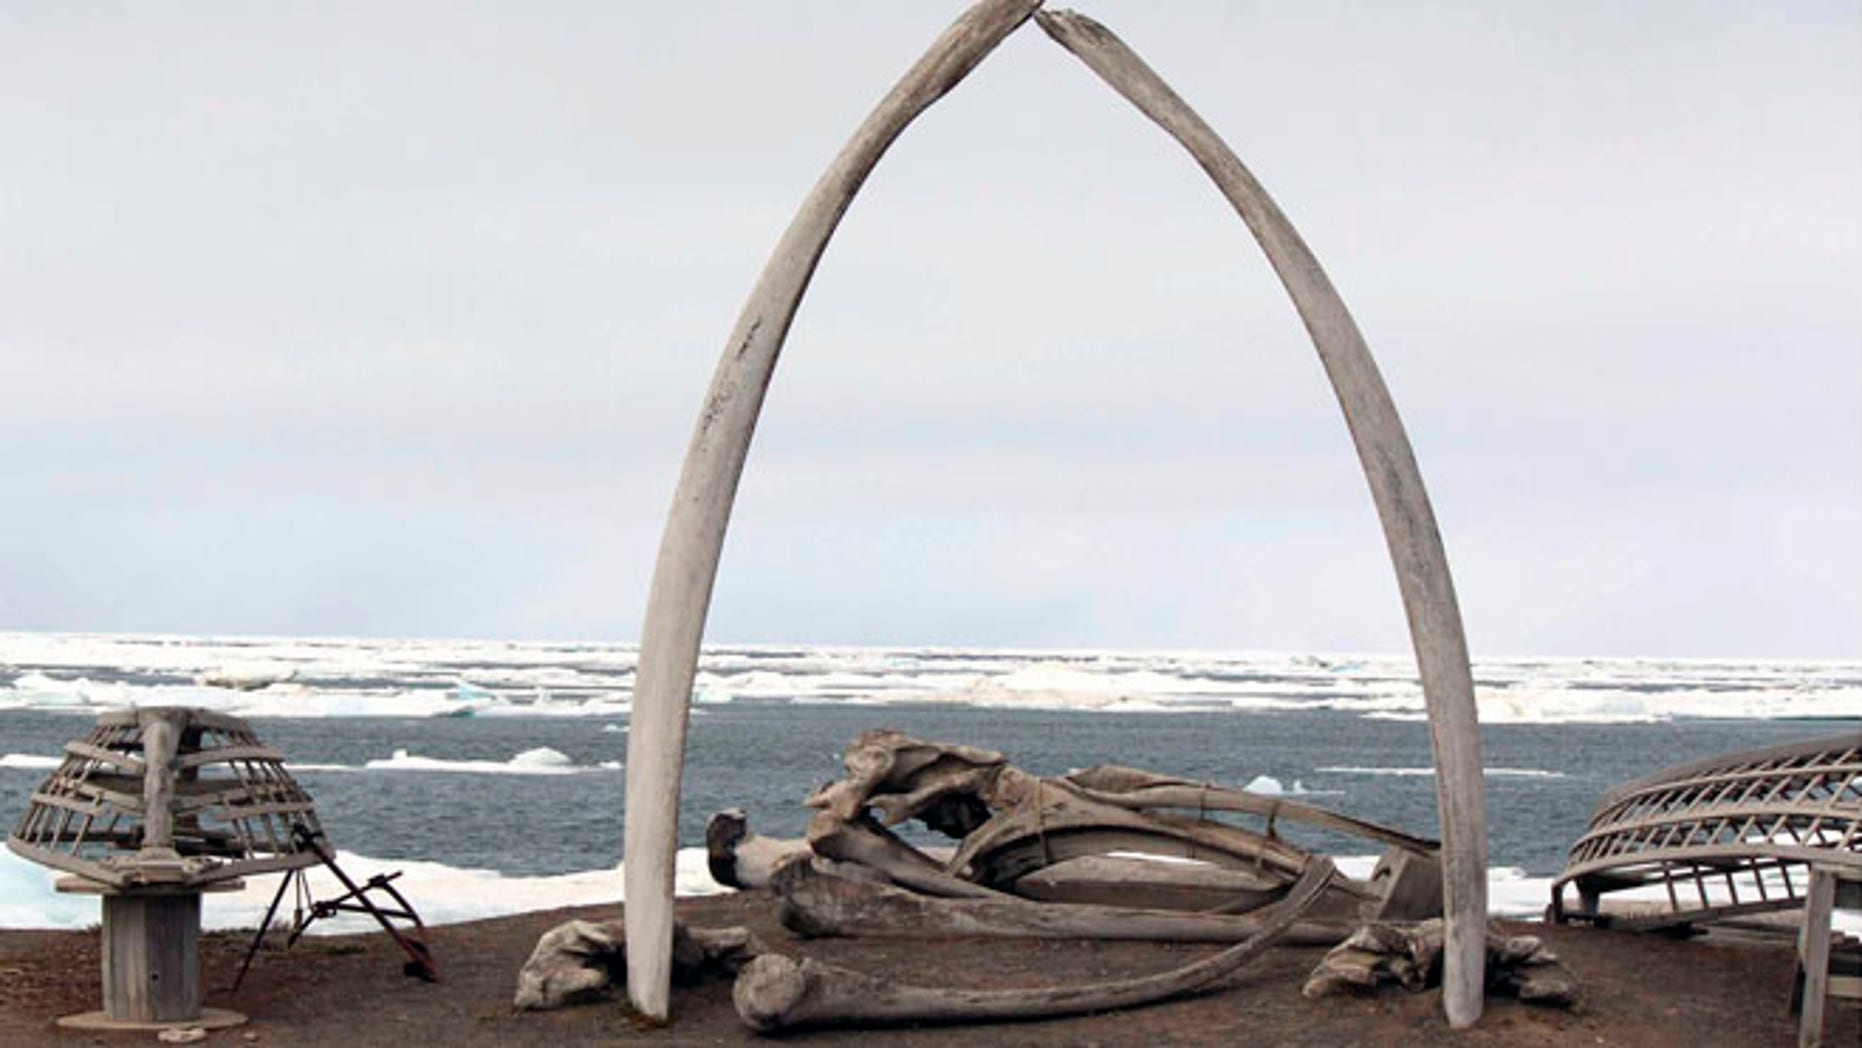 July 16, 2012: A whalebone arch sits on the Barrow, Alaska, shoreline as ice floats in the Arctic Ocean in the background.